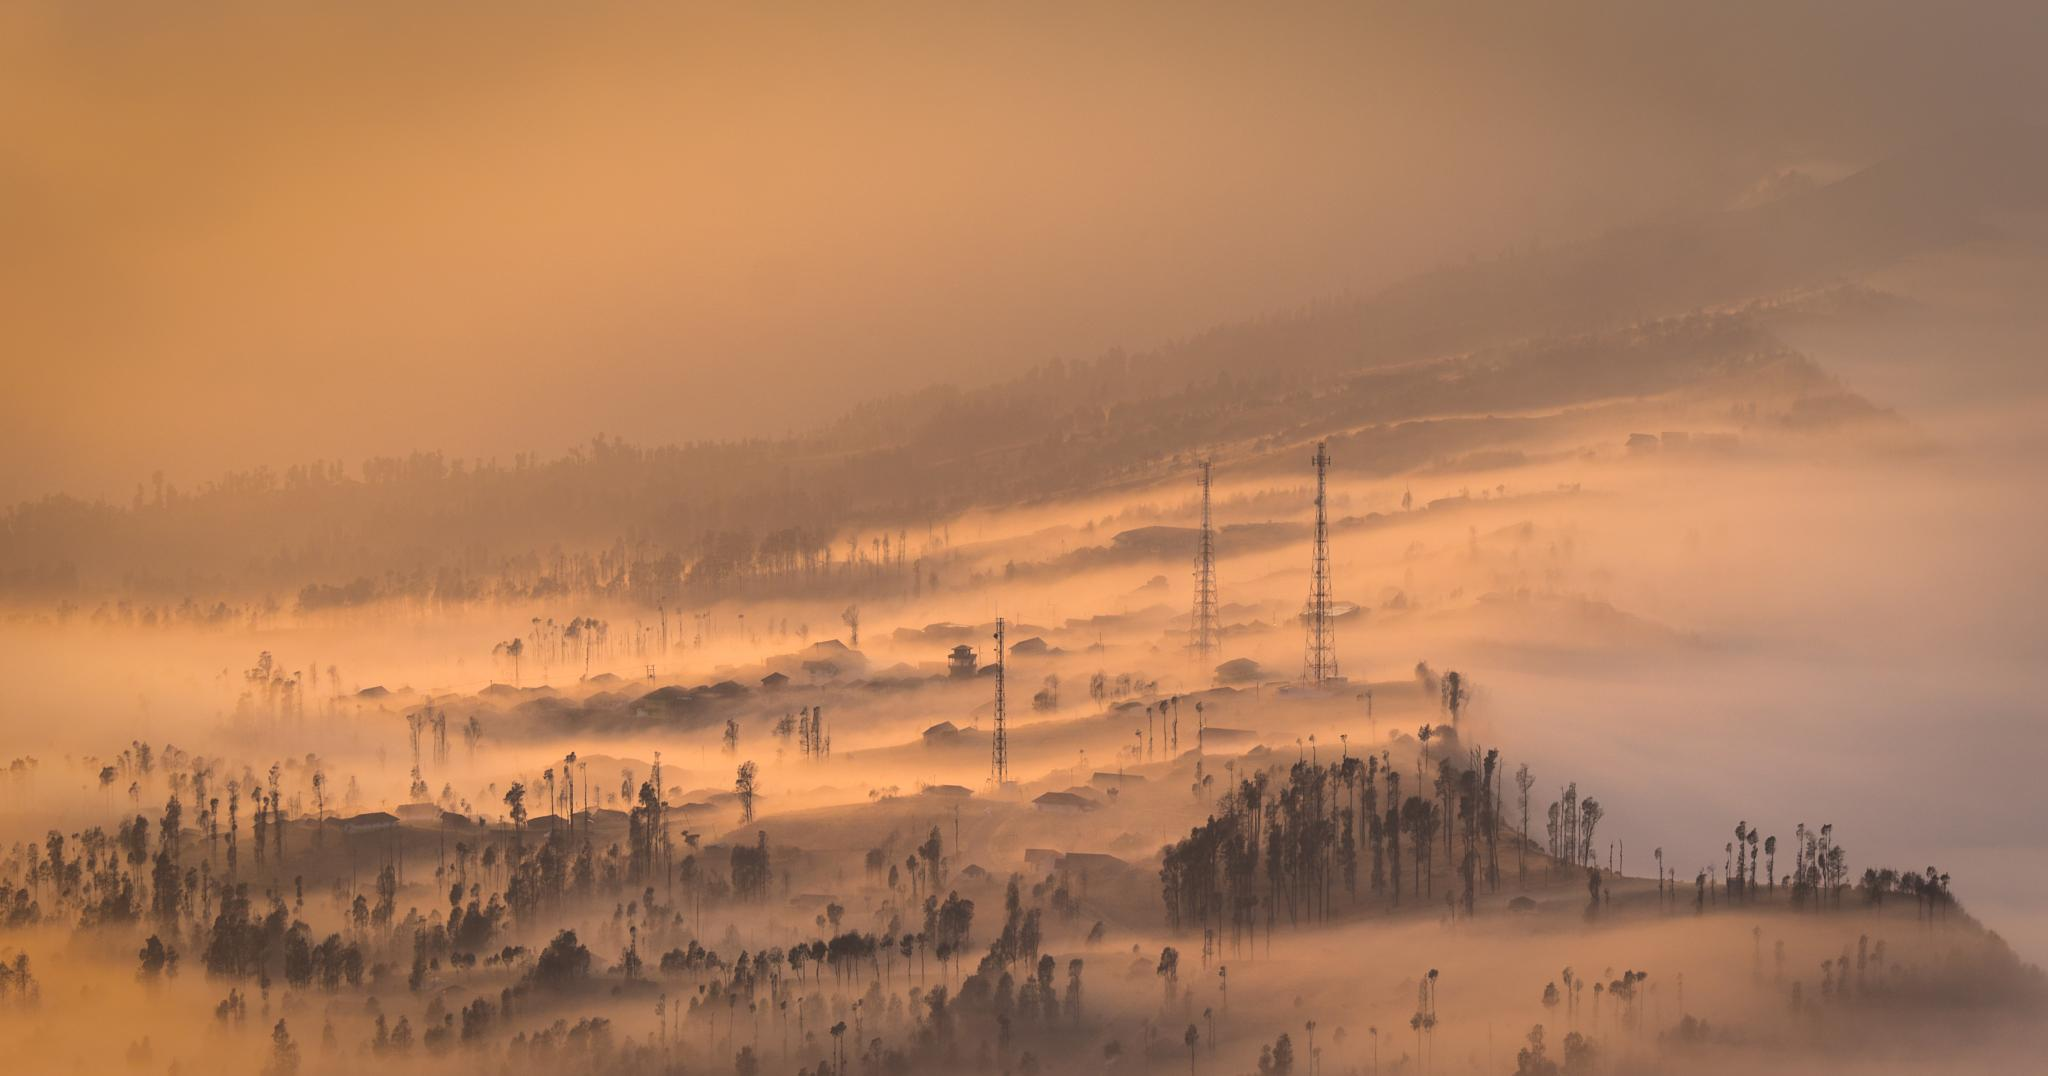 Morning in the mist by sawinism